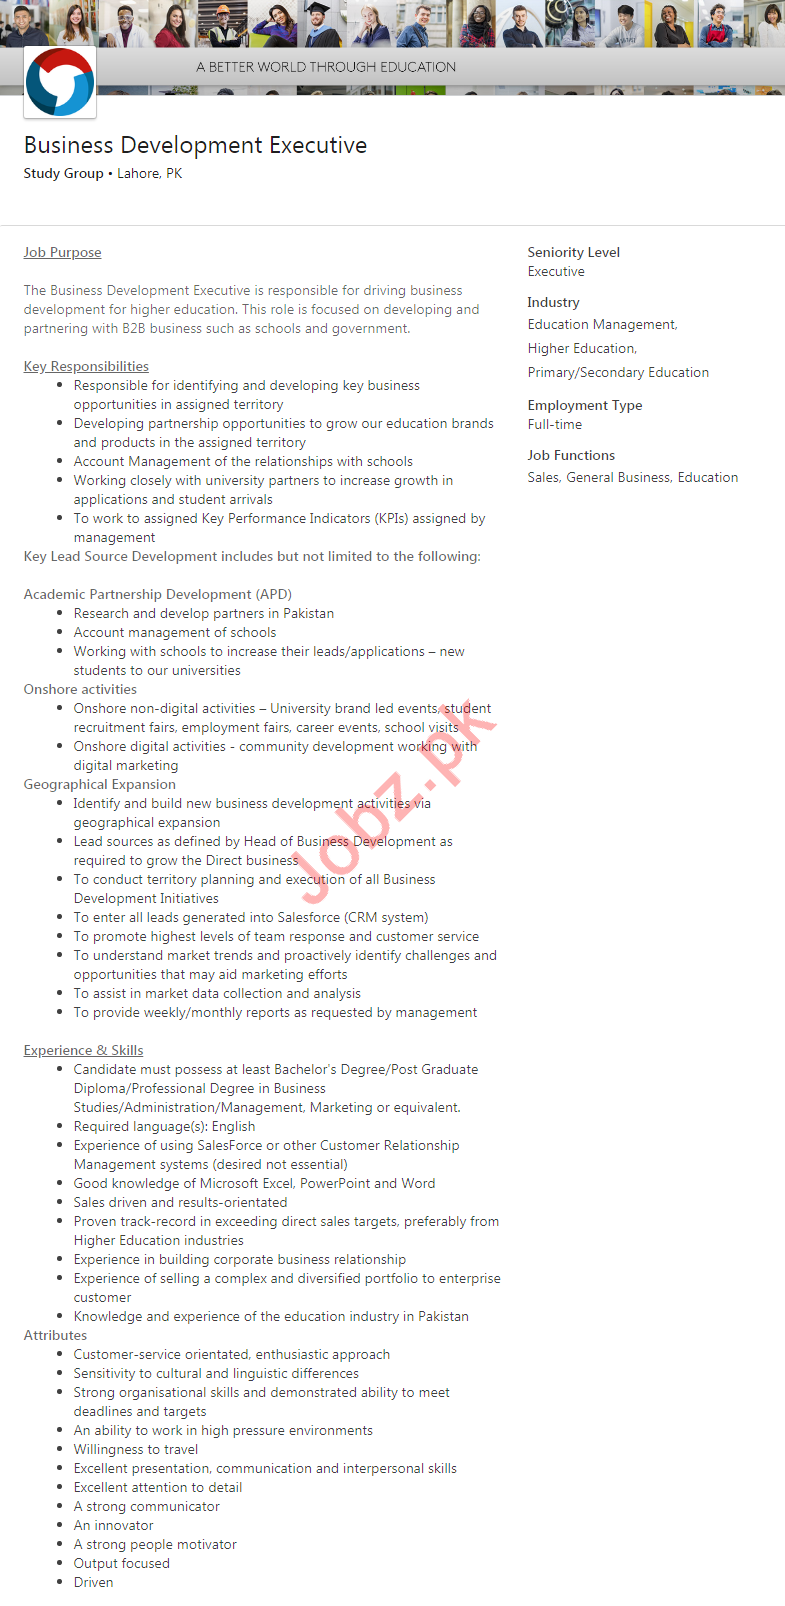 Business Development Executive Job 2020 in Lahore